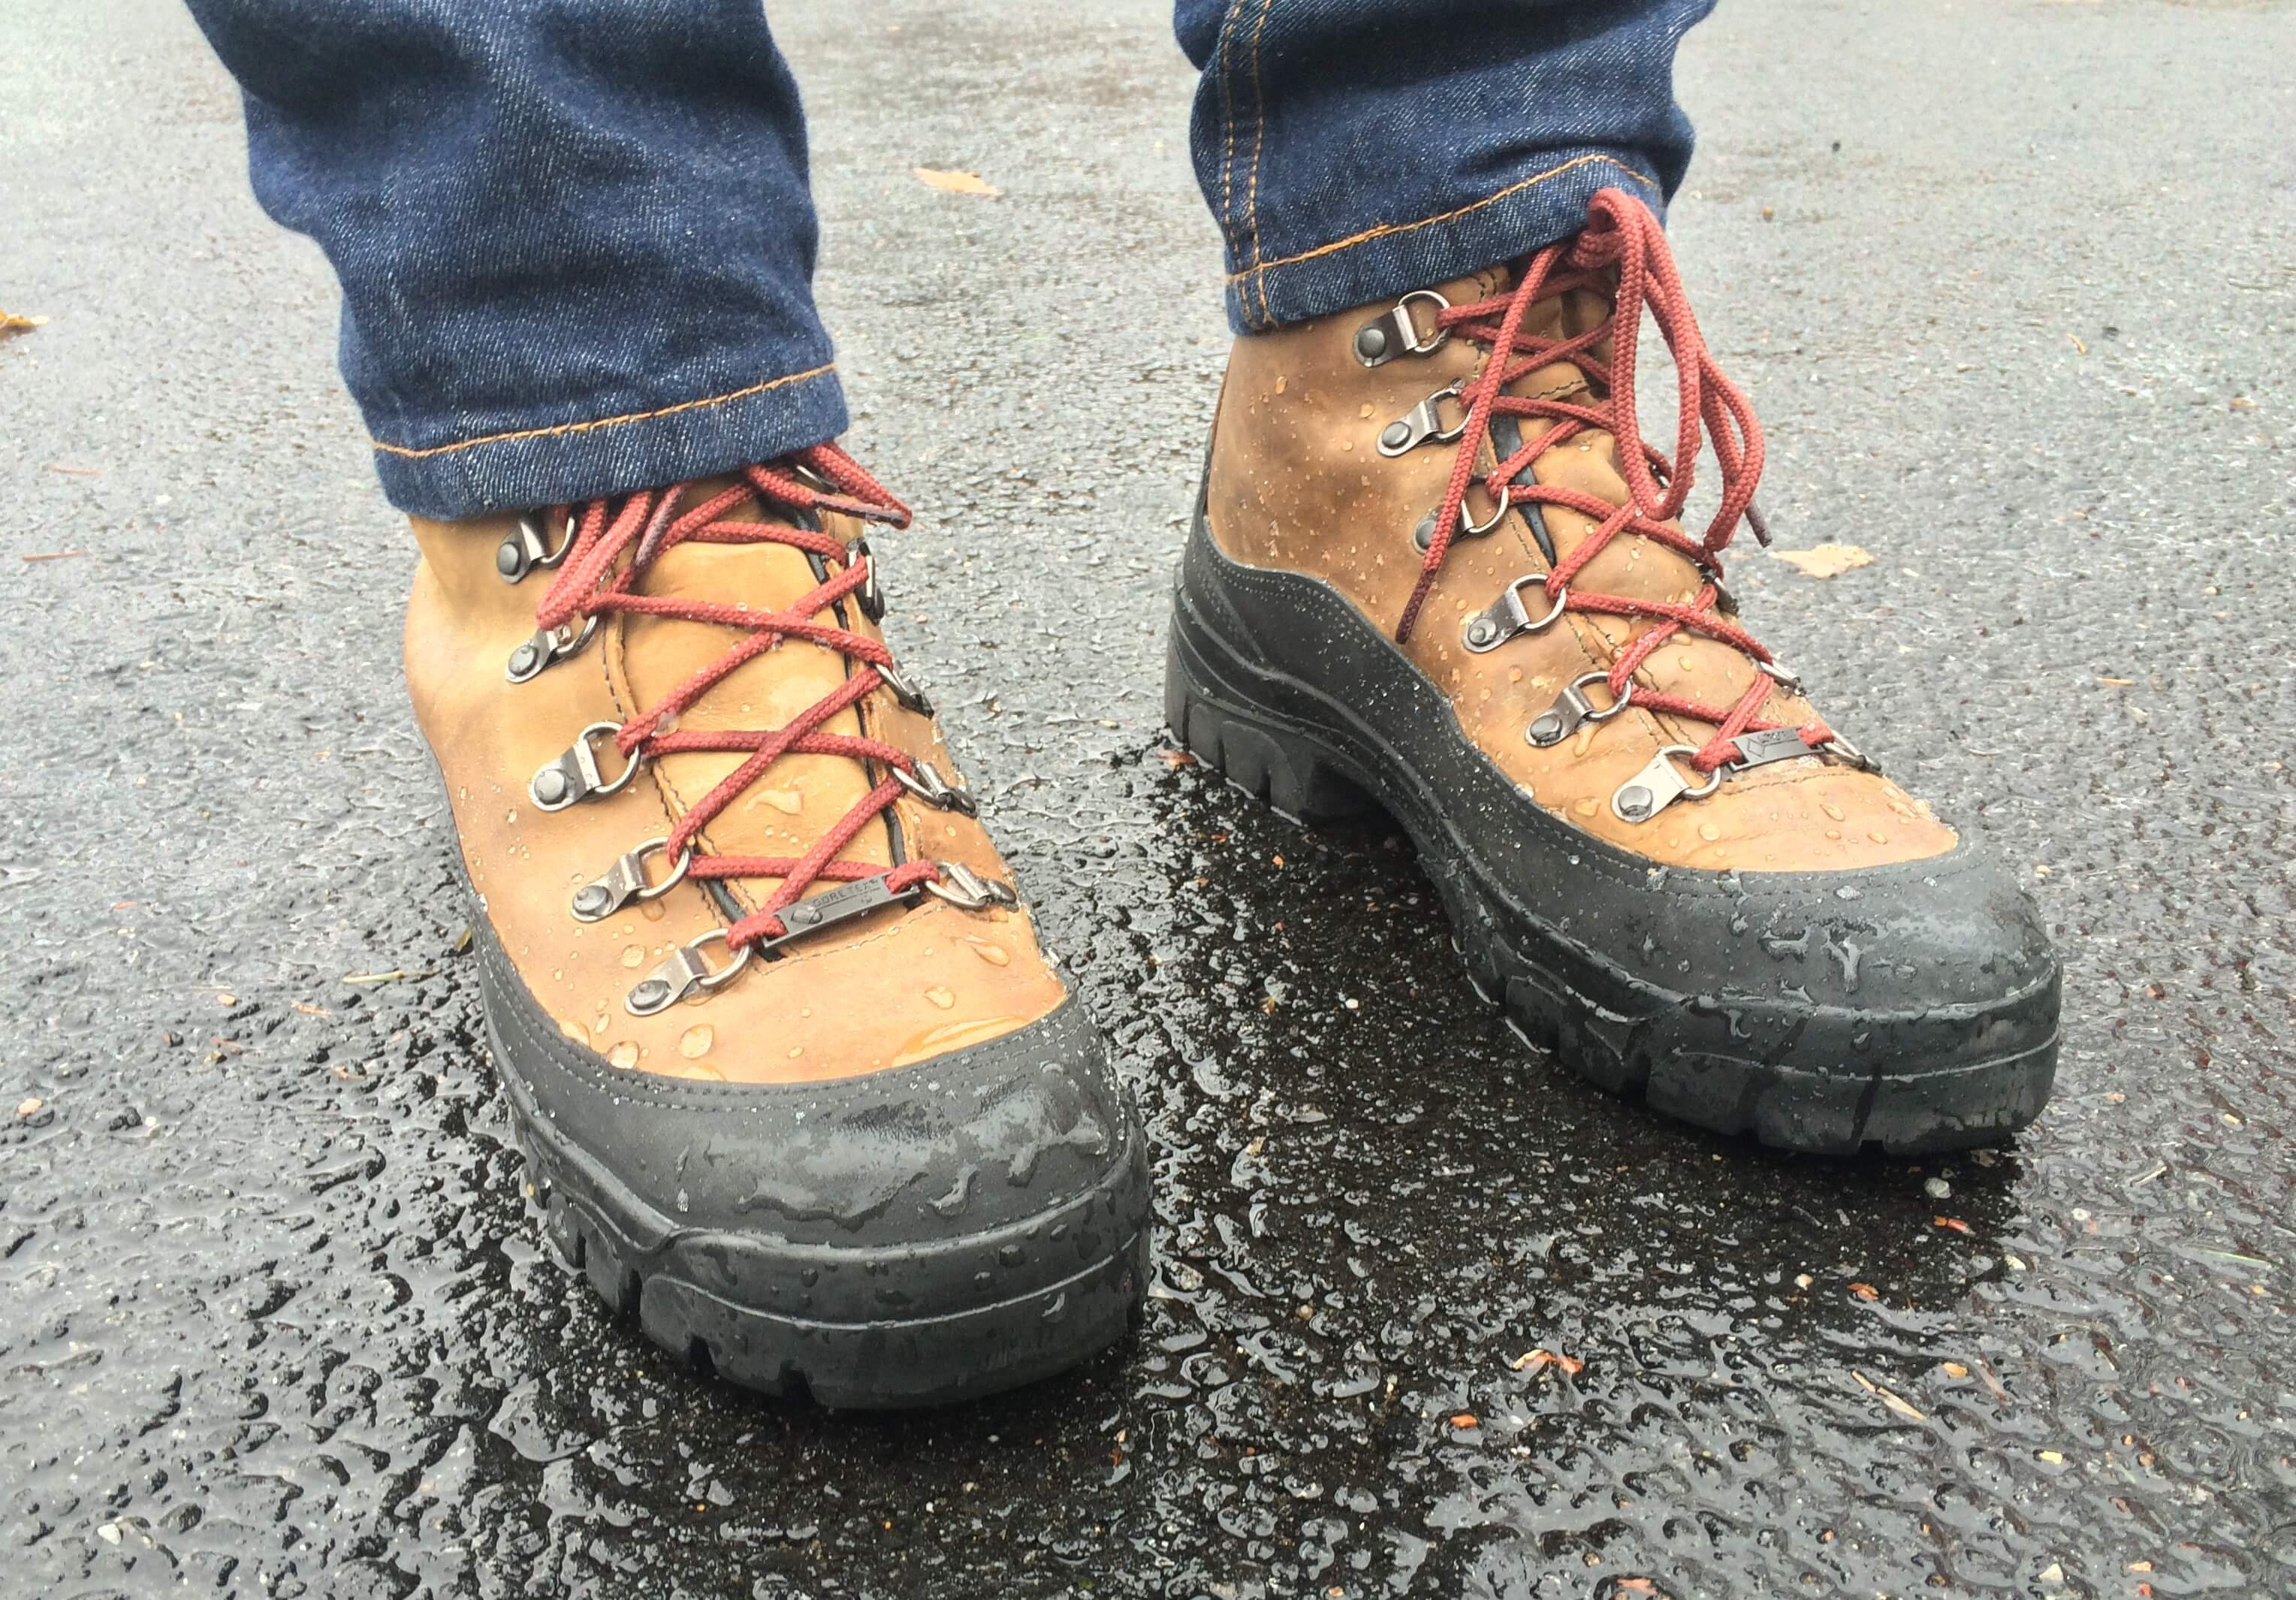 Danner Boots Review WJFg3Cqk